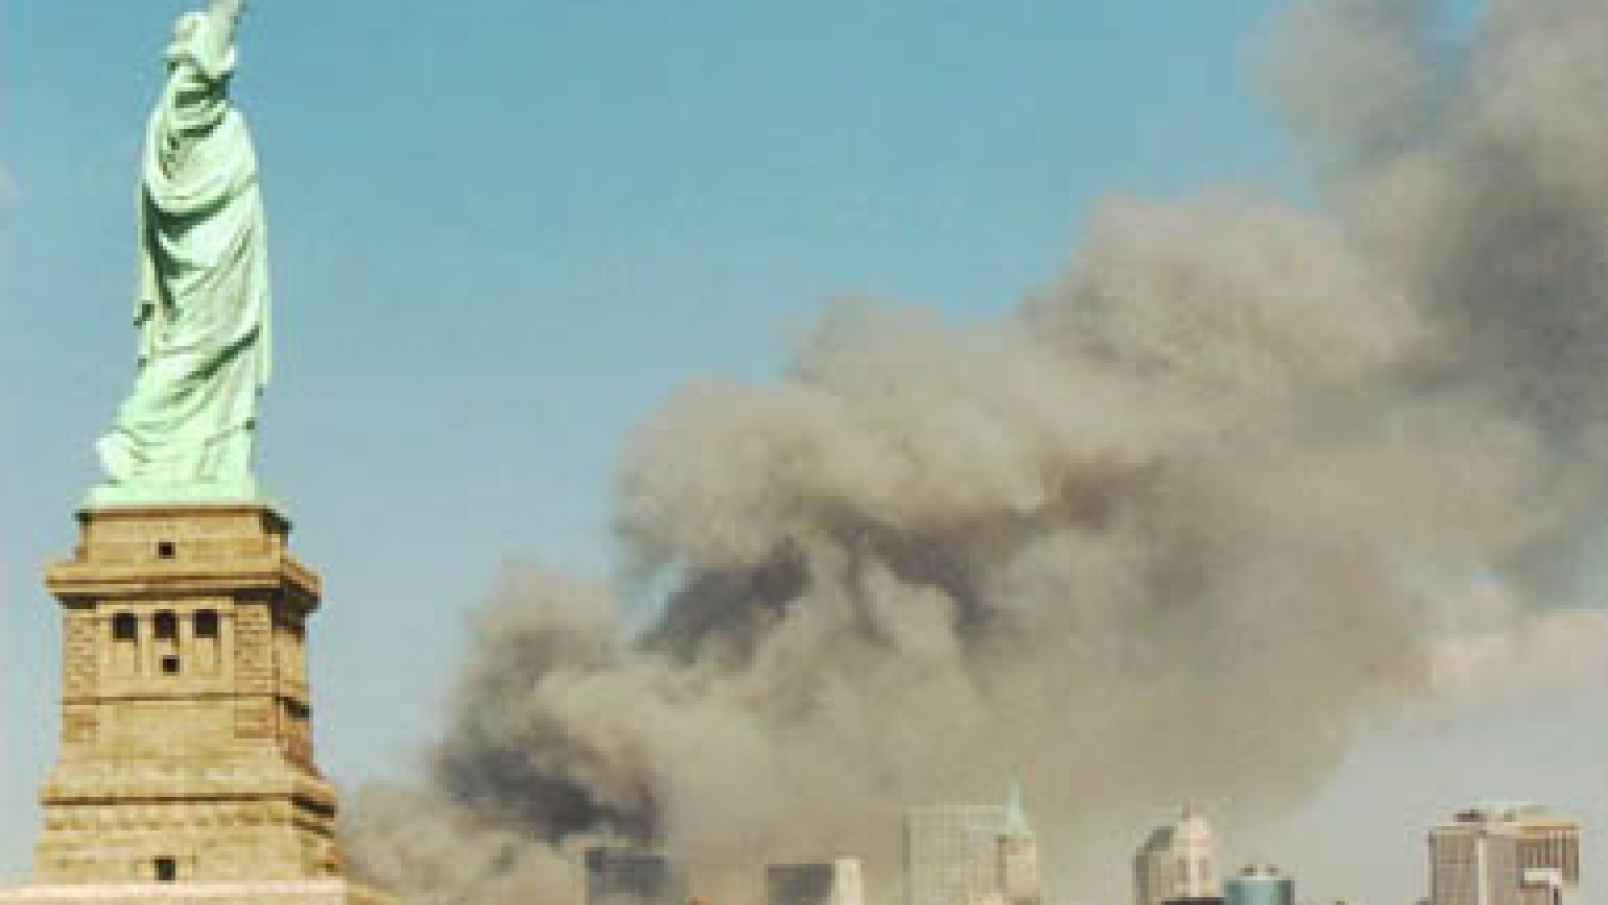 Did We Learn Anything From 9/11? - Frontpagemag